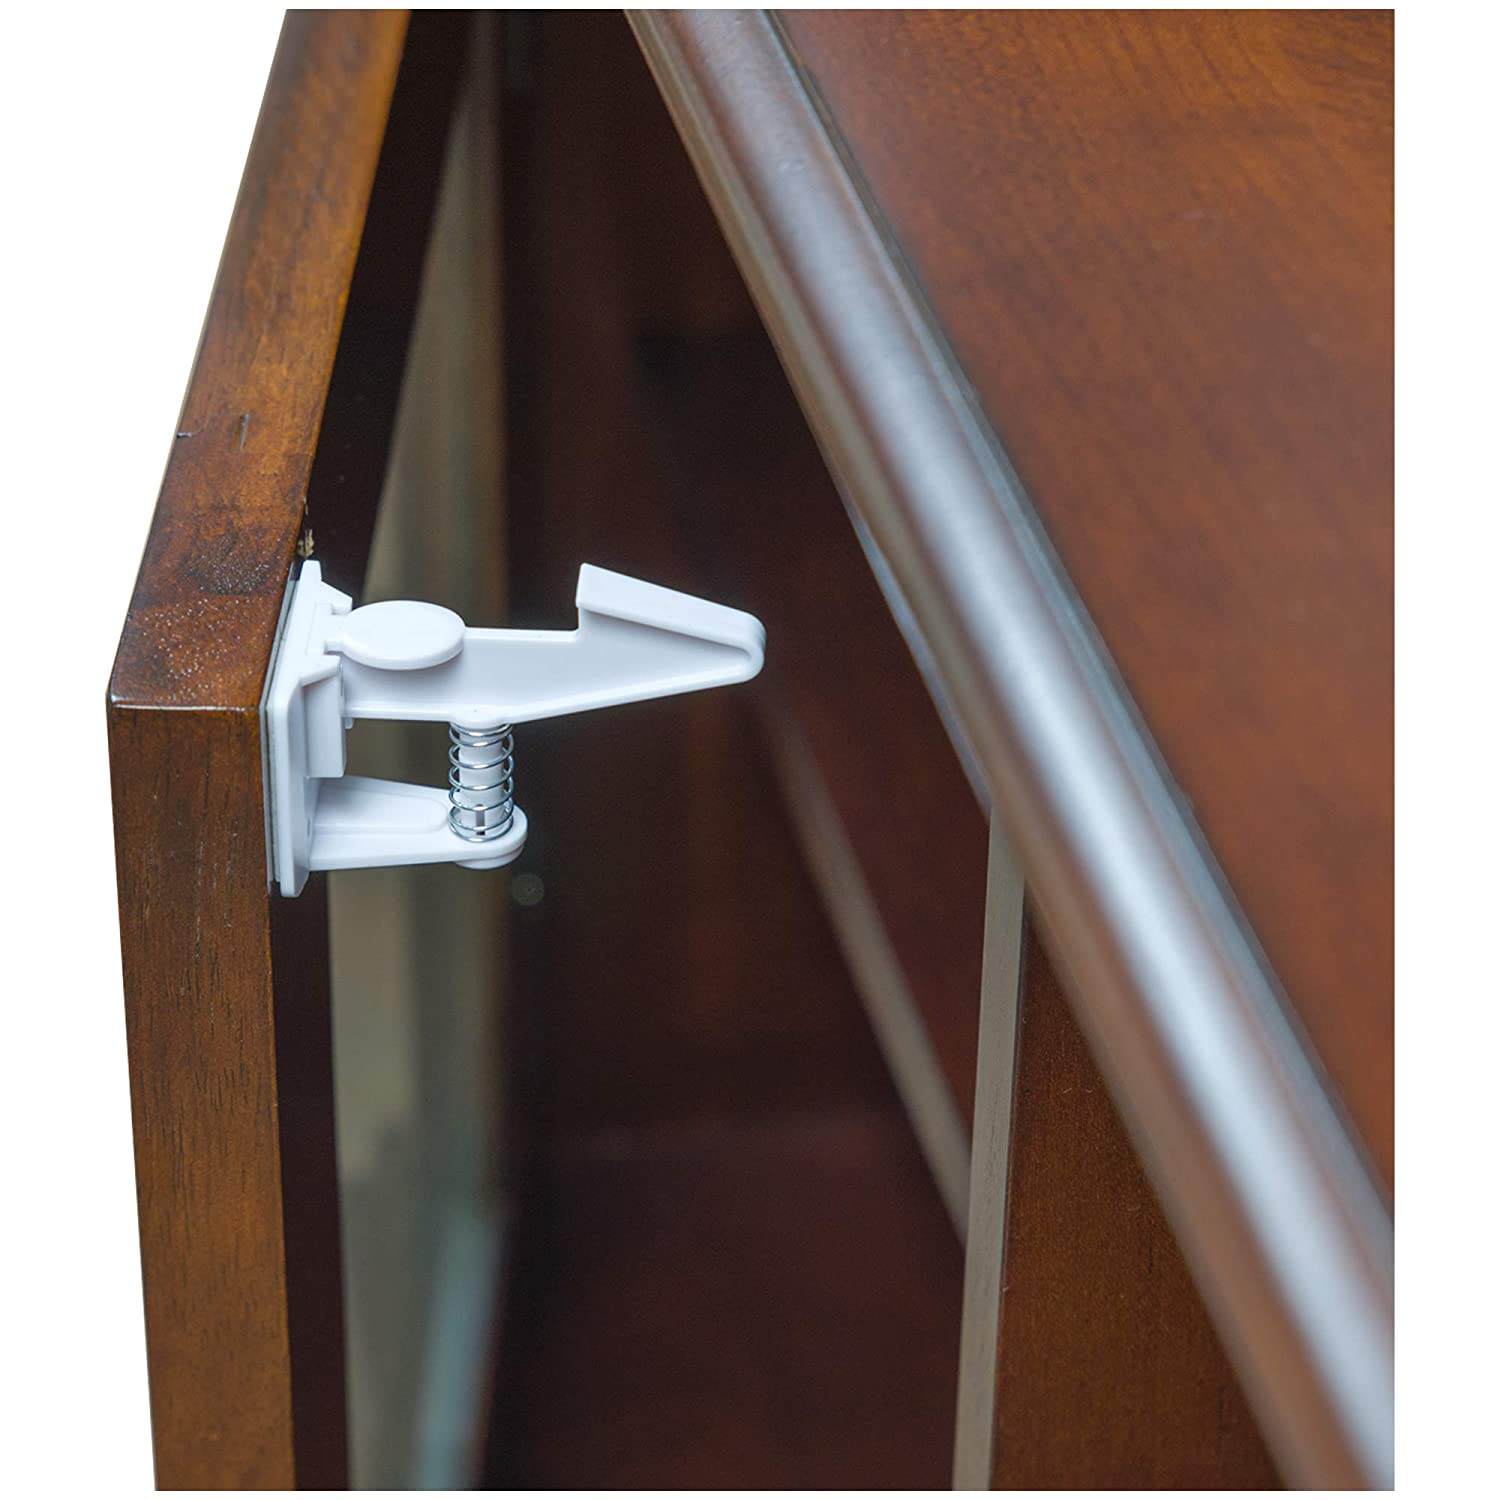 Cabinet Time sale Locks Child Safety Latches New Orleans Mall 8 Baby Proofing Cabi Pack -